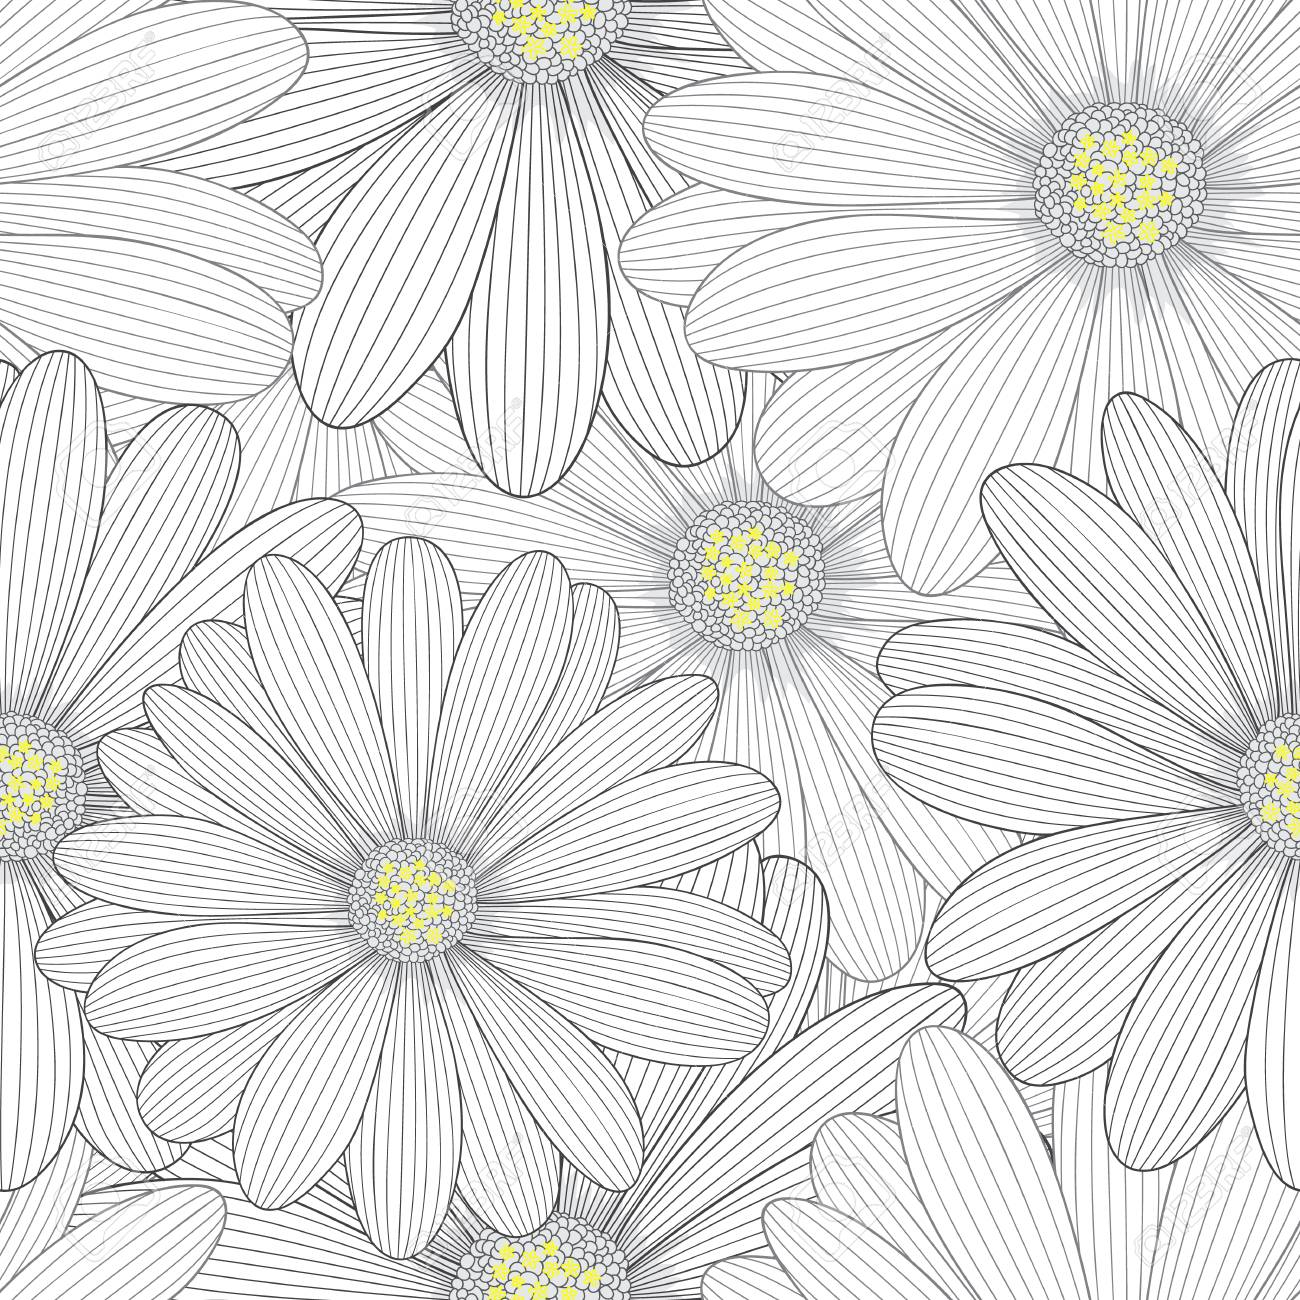 Monochrome seamless hand drawing floral background with flower monochrome seamless hand drawing floral background with flower daisies stock photo 76872696 izmirmasajfo